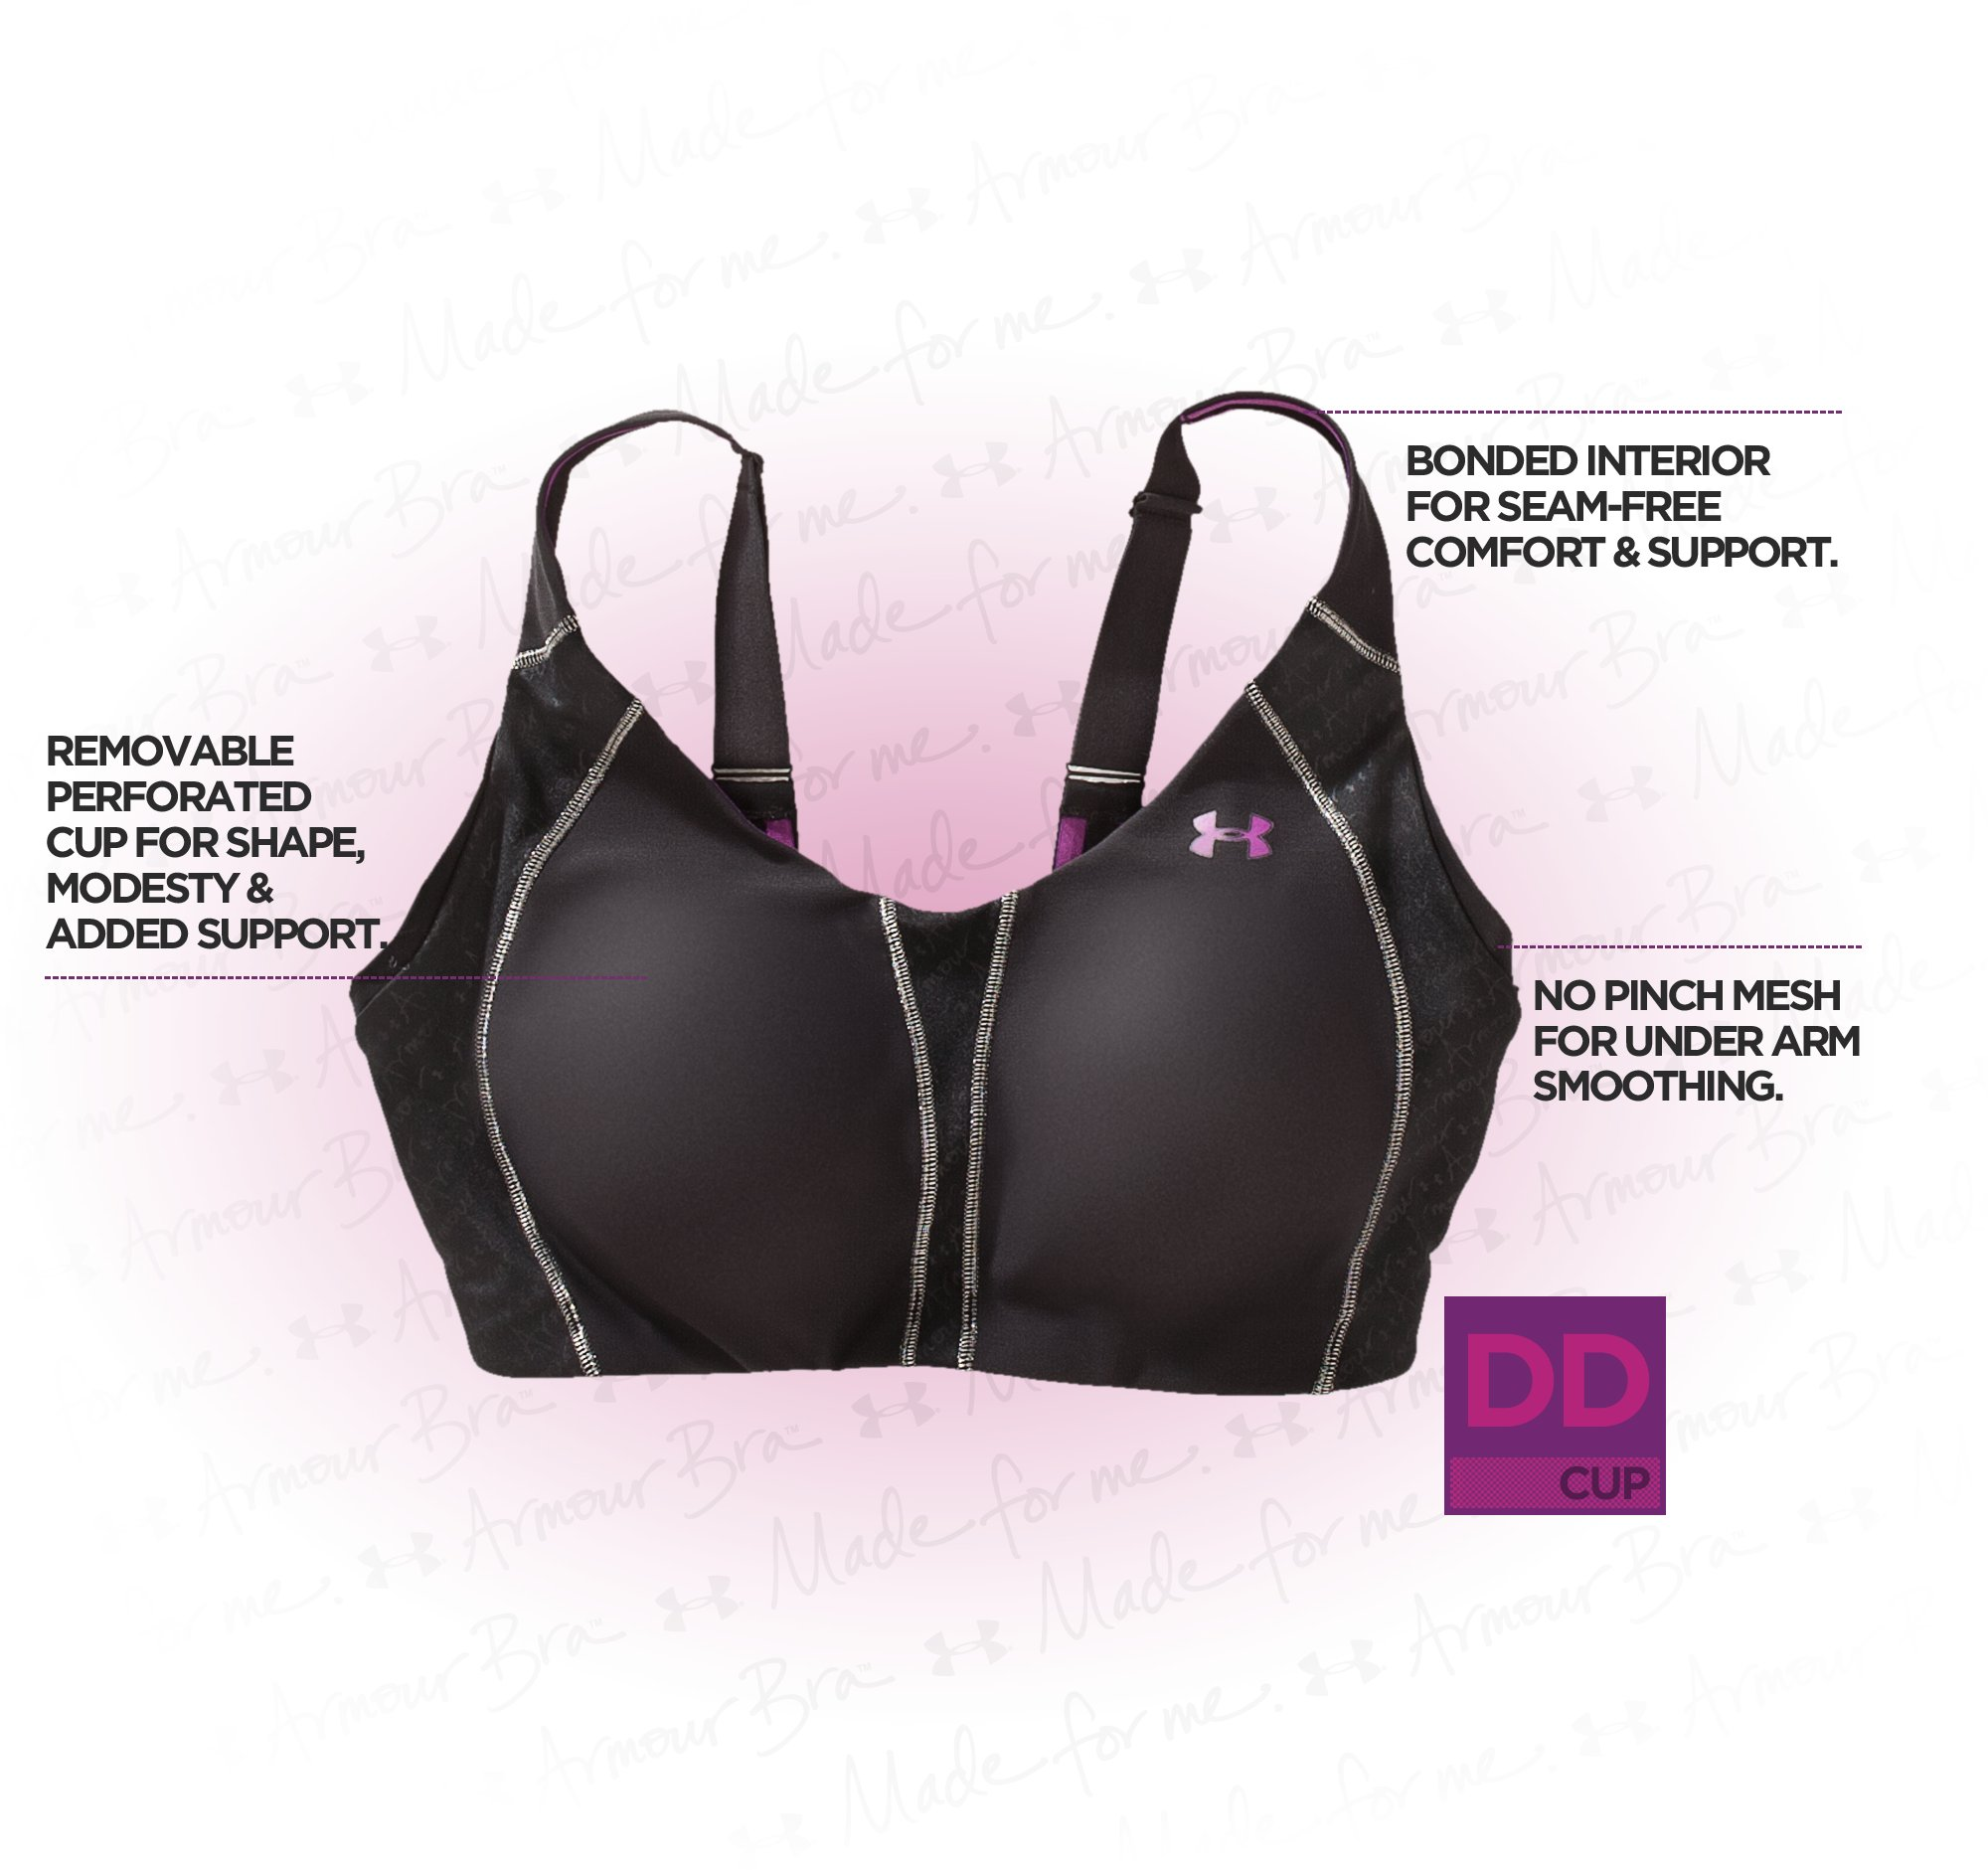 Women's Armour Bra® DD Cup, Black